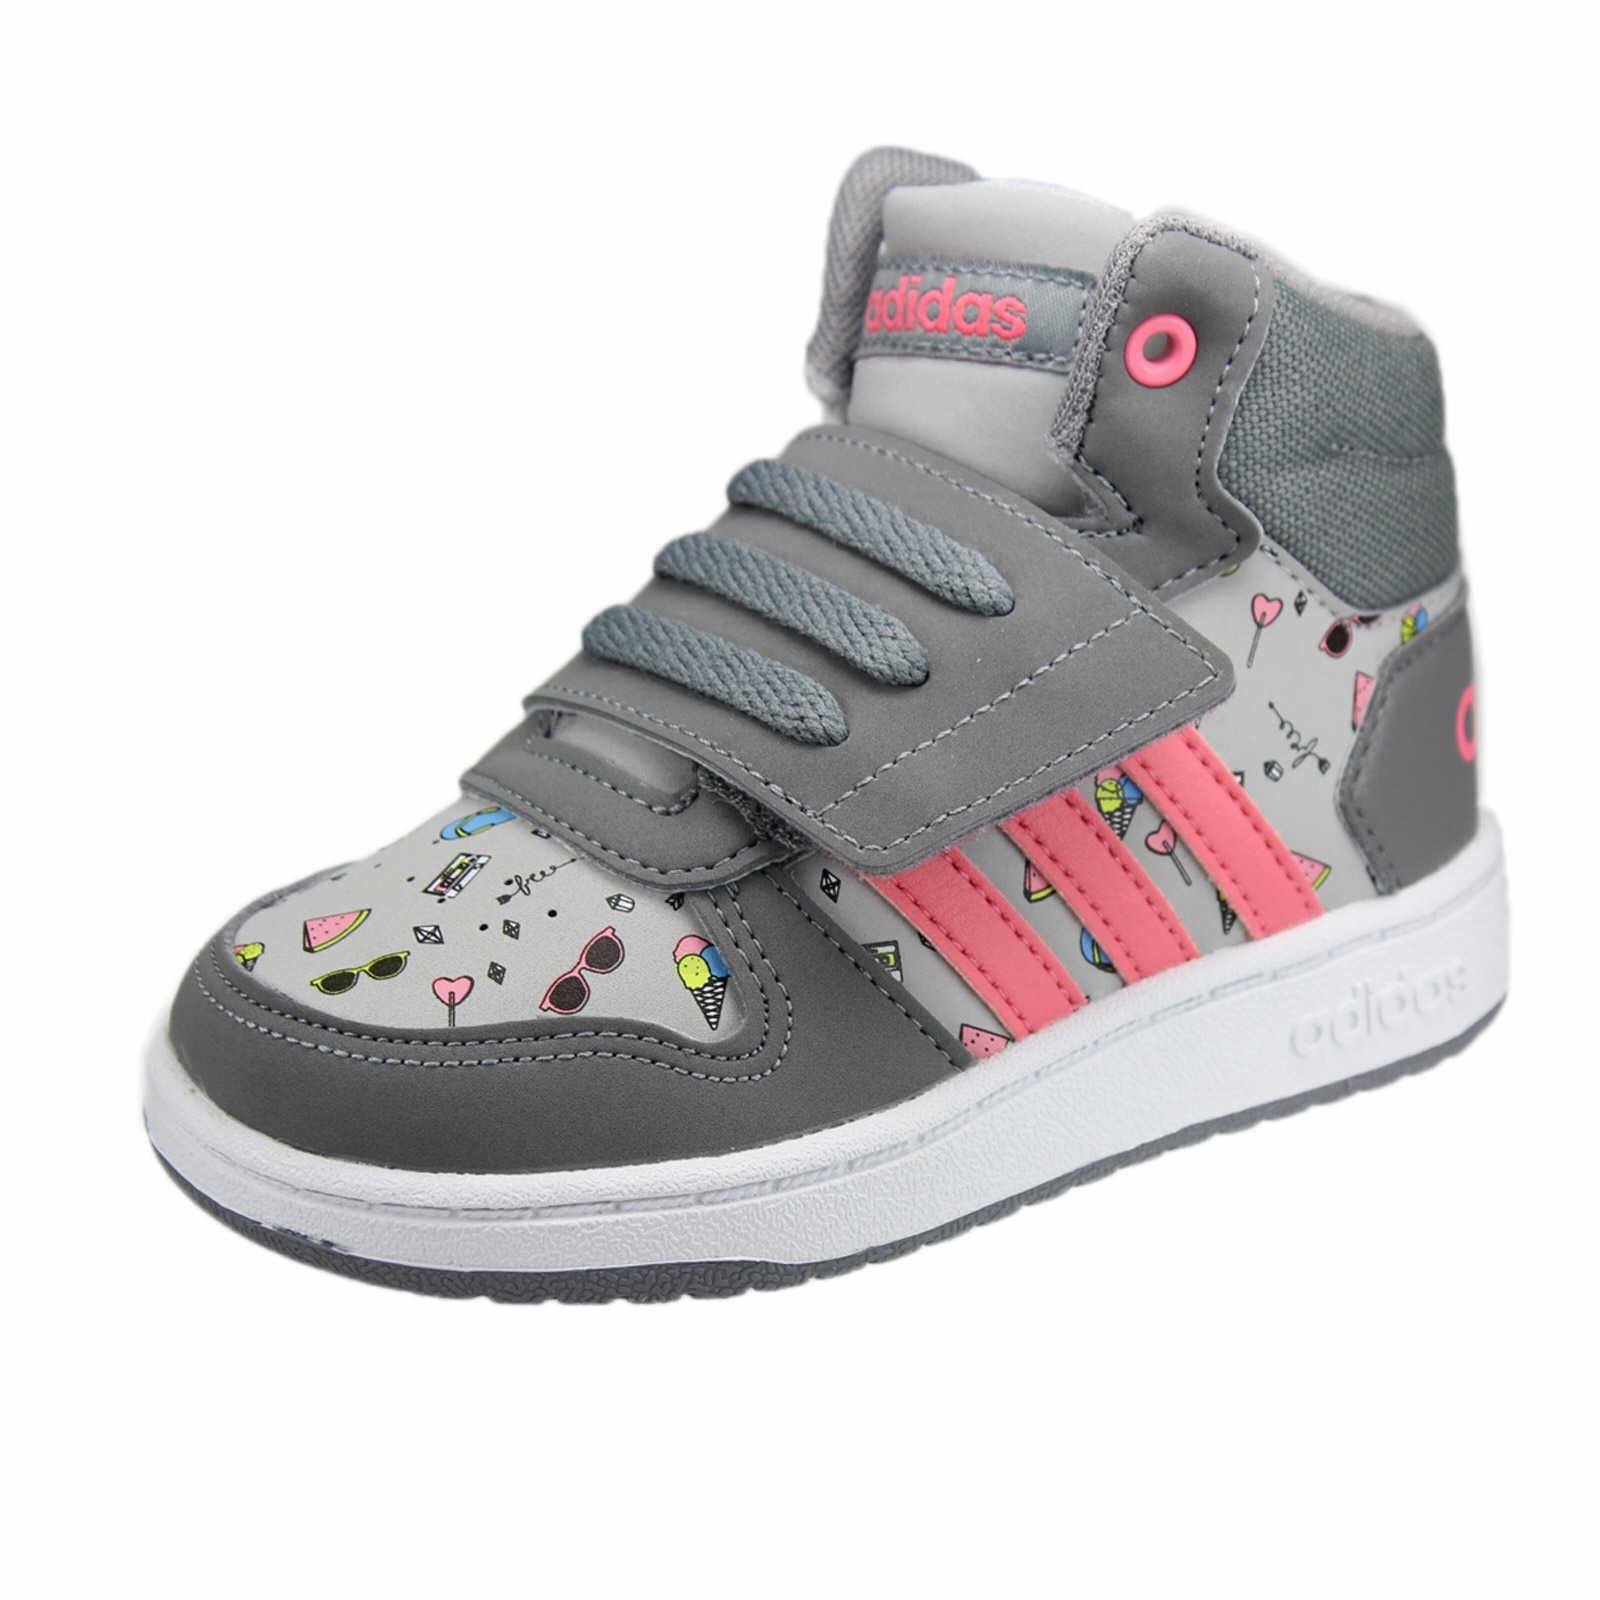 adidas neo midcut sneaker in grau schuhparadies. Black Bedroom Furniture Sets. Home Design Ideas